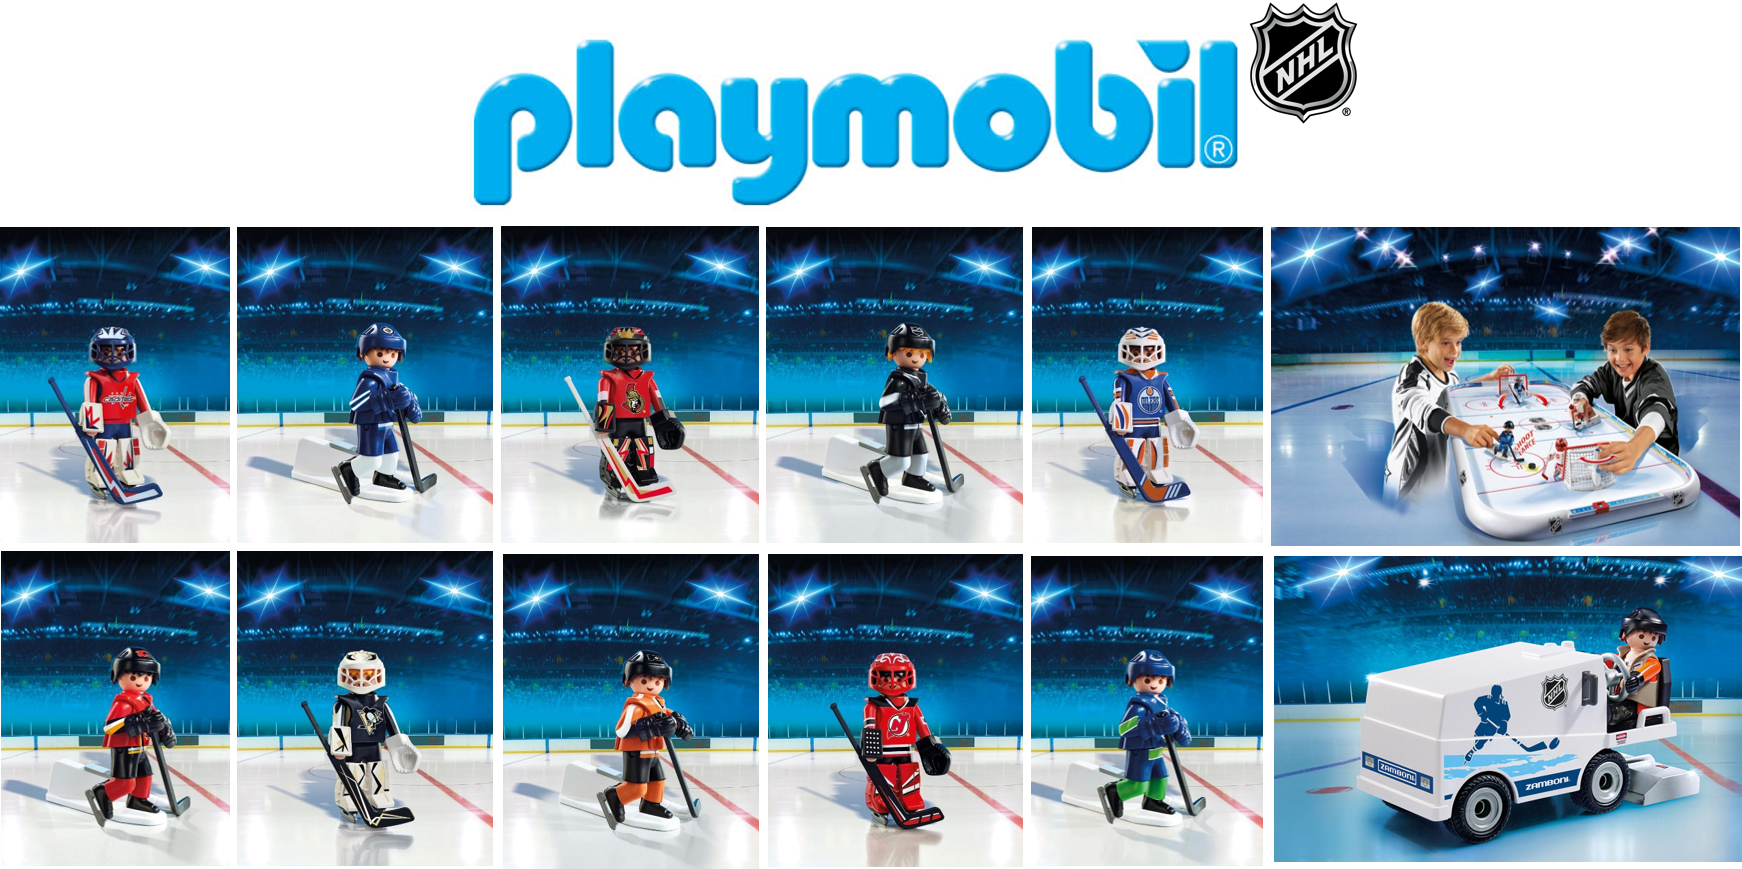 Paymobil NHL pitch pic-2